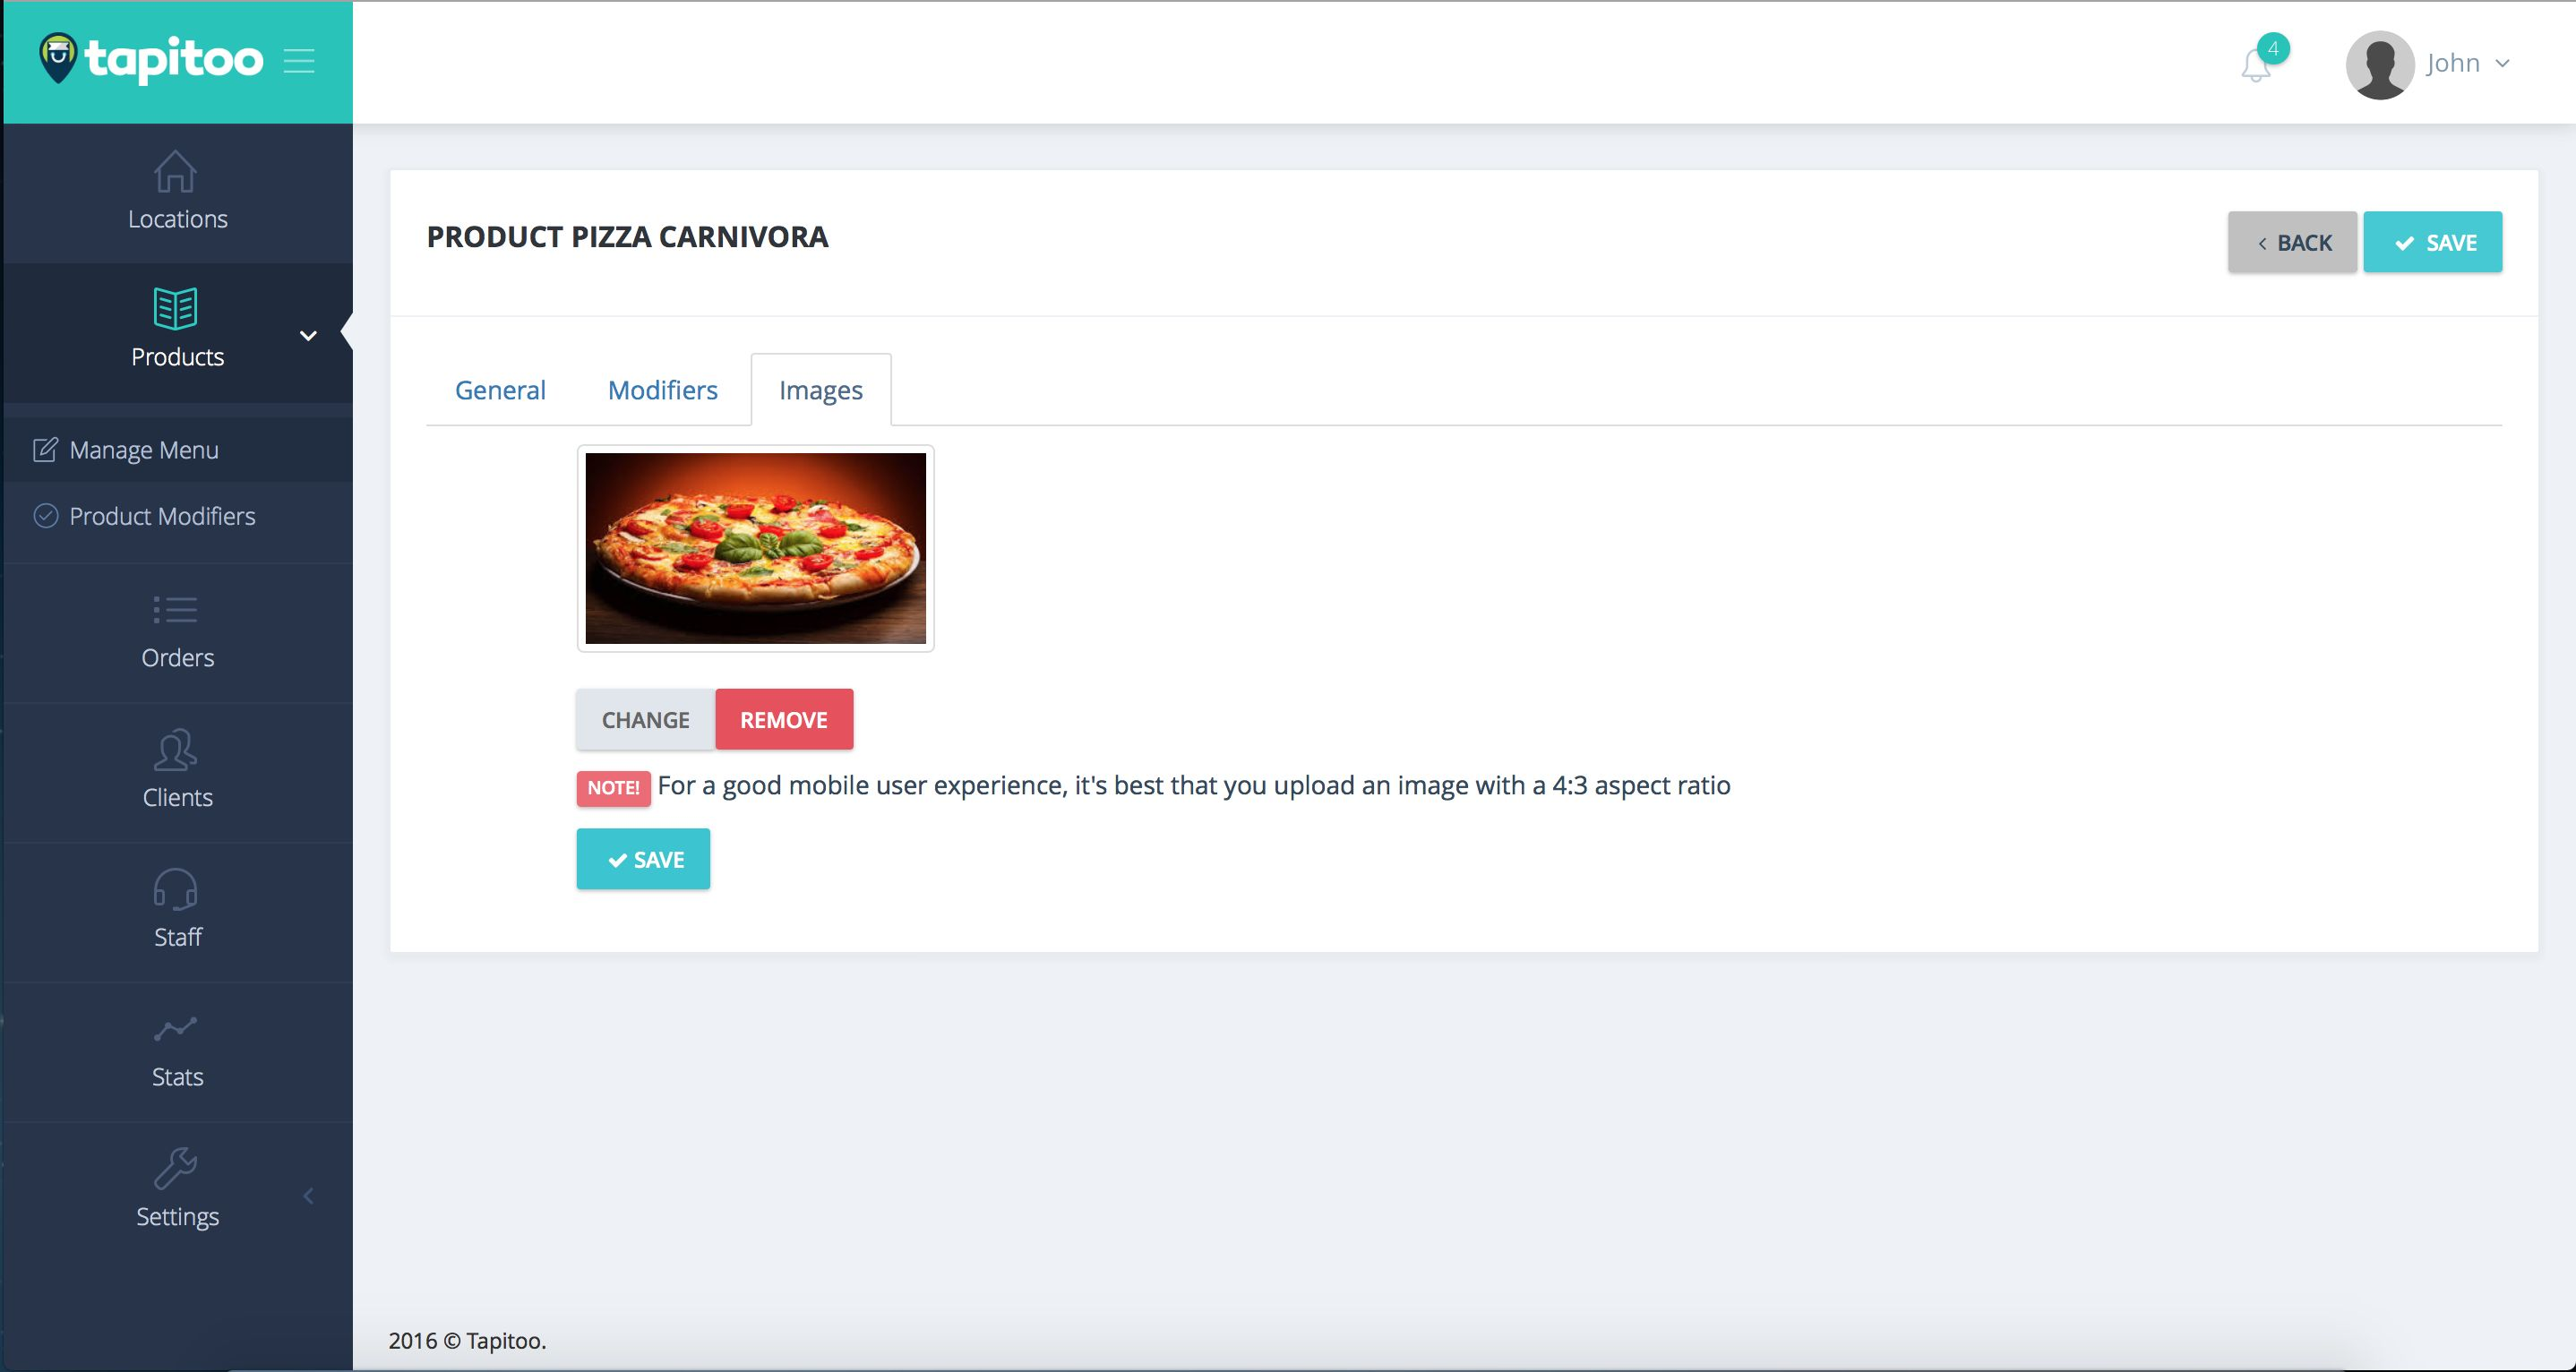 Tapitoo - Restaurant Delivery Order Platform Screenshot 38